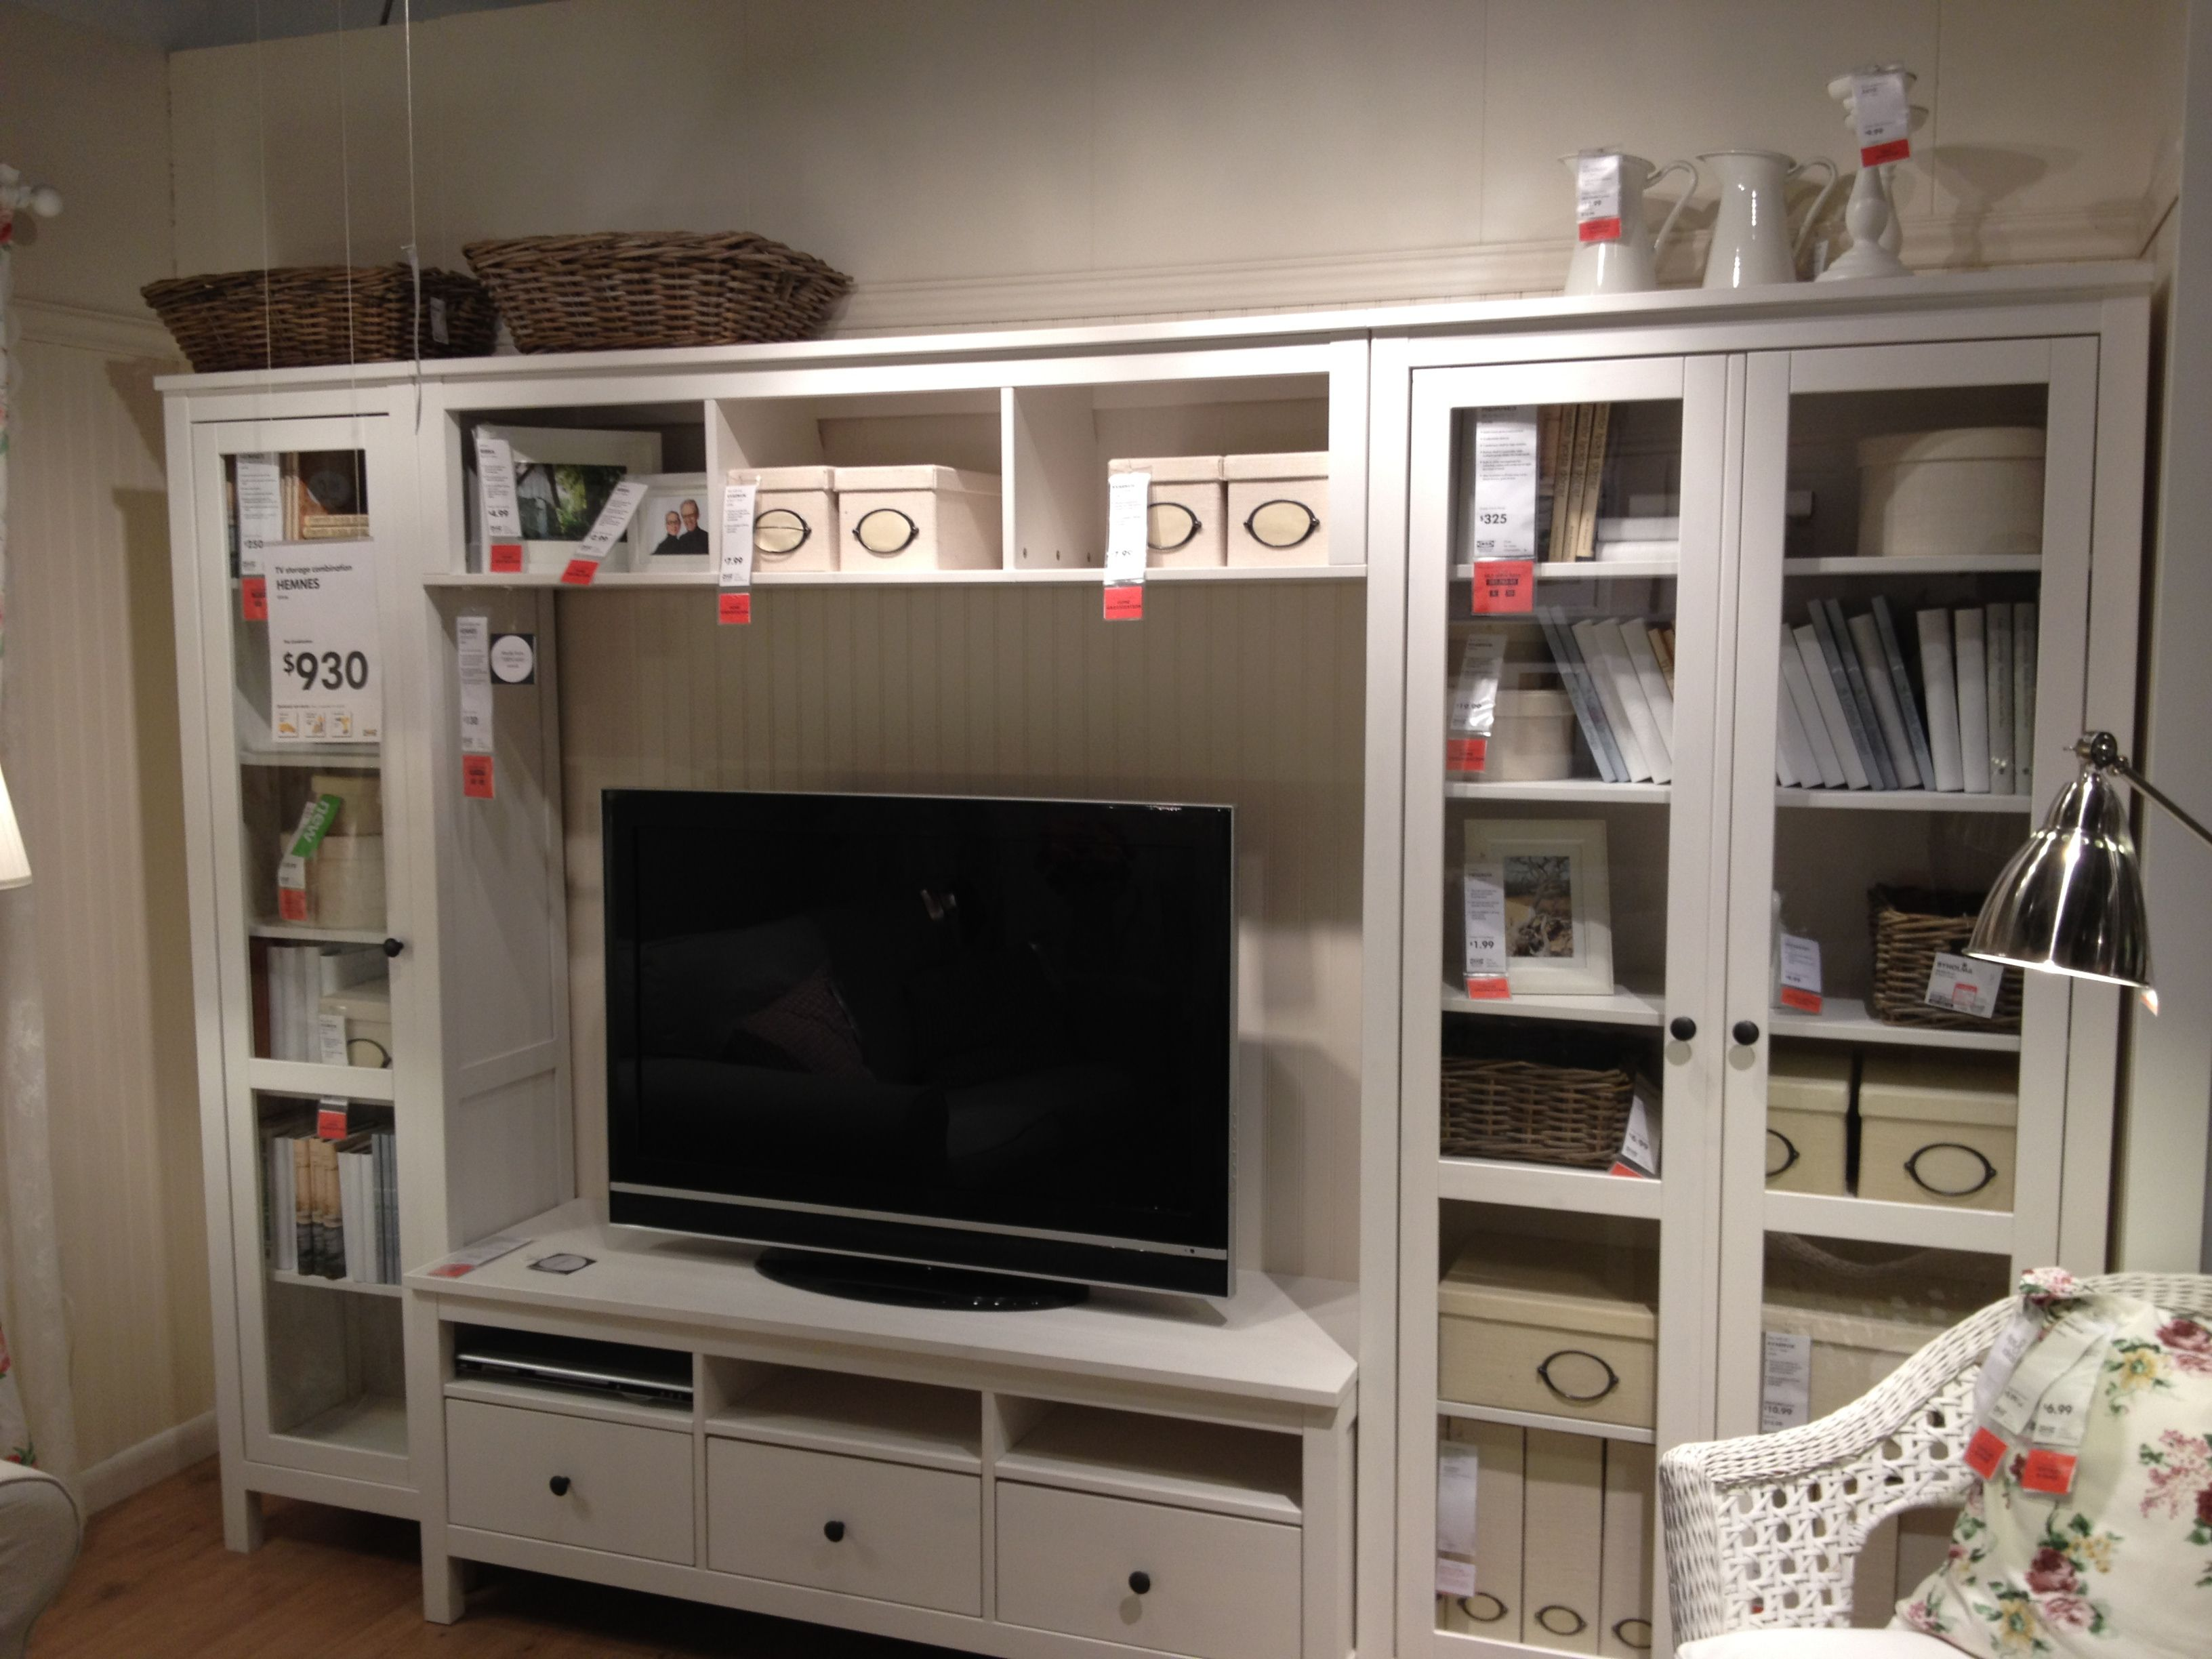 Wohnwand ikea hemnes  TV storage combination Ikea Hemnes $930 | Loft | Pinterest ...